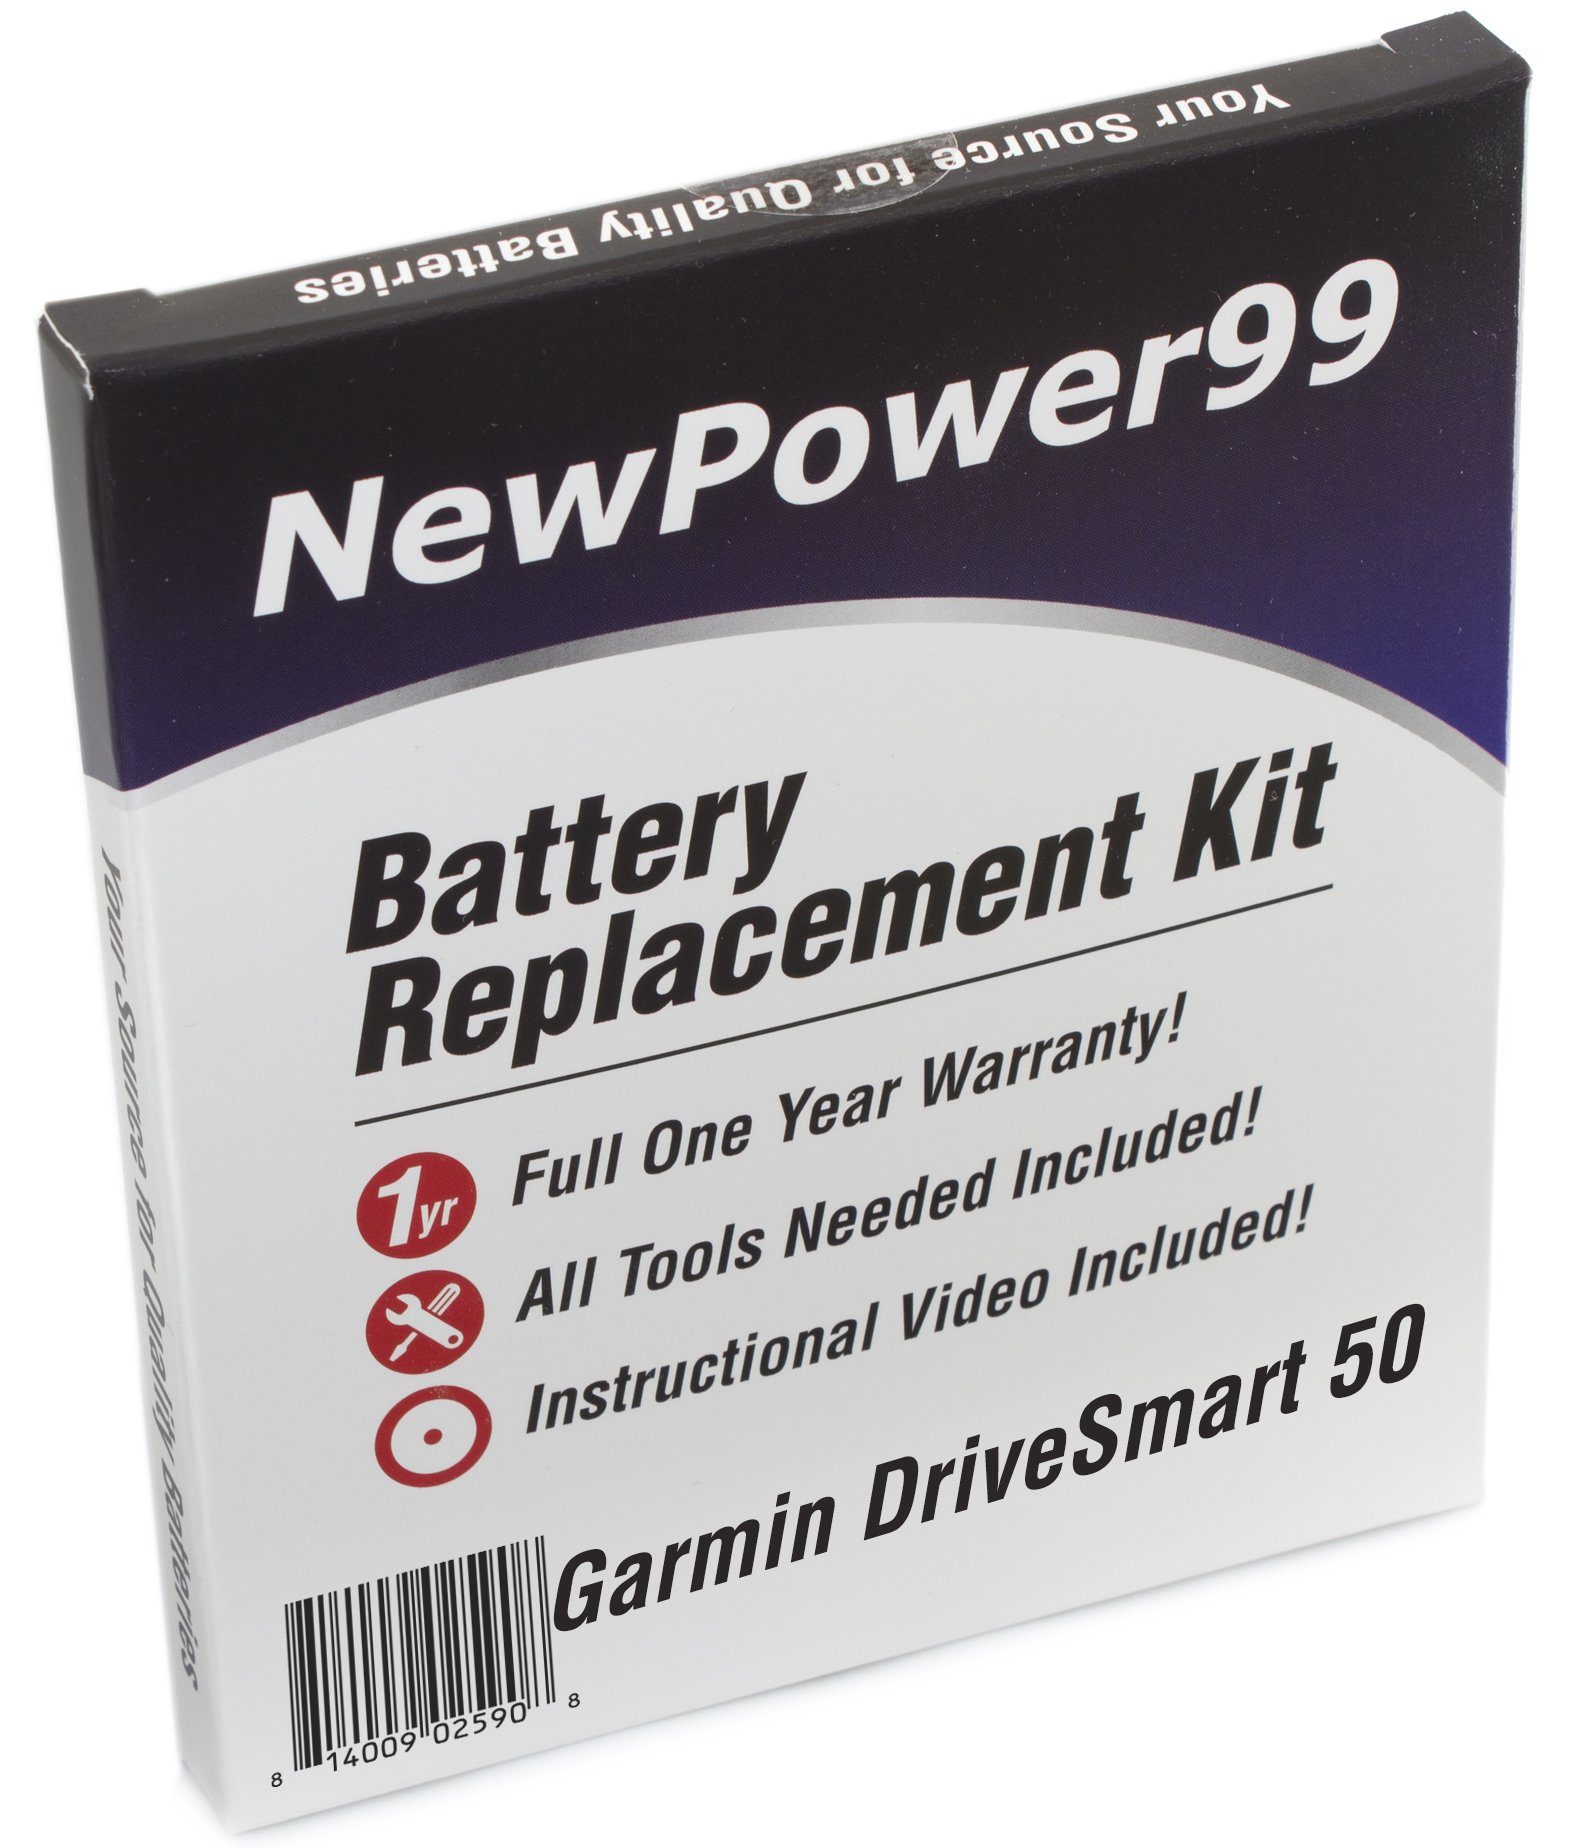 Battery Replacement Kit for Garmin DriveSmart 50 with Installation Video, Tools, and Extended Life Battery.